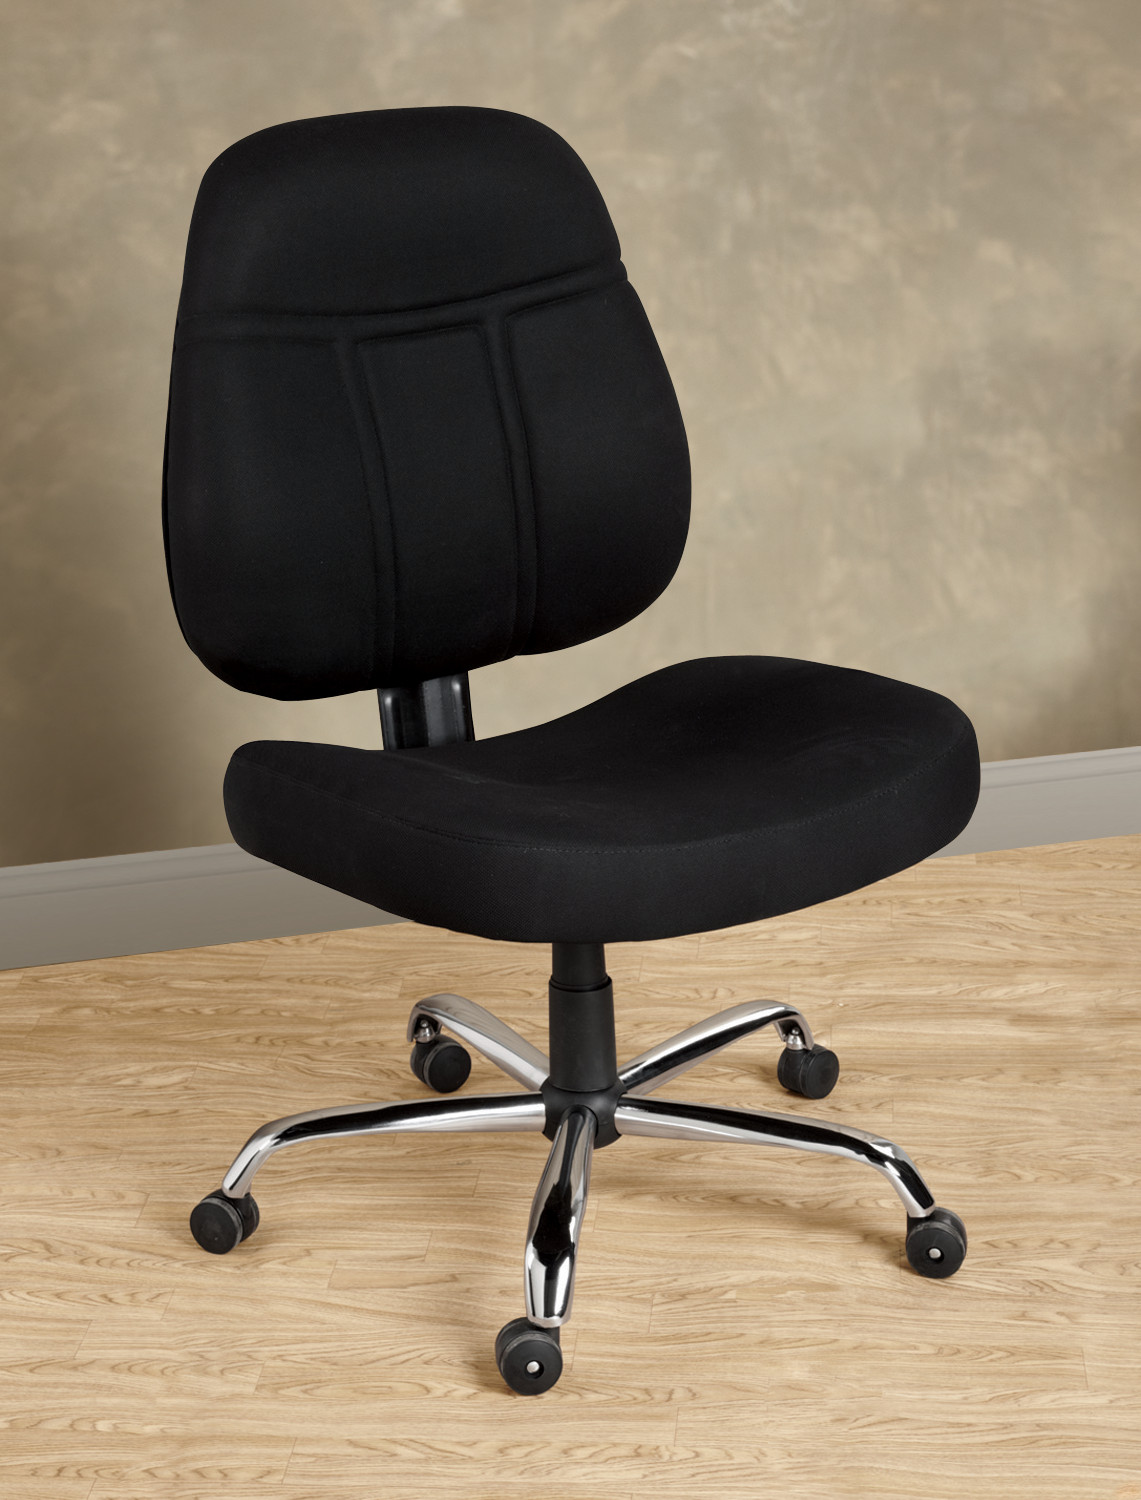 avenger big lx completely of with leather s everyone supported executive luxury tall model back series ip office black get high and is ofm comfortable along the chair